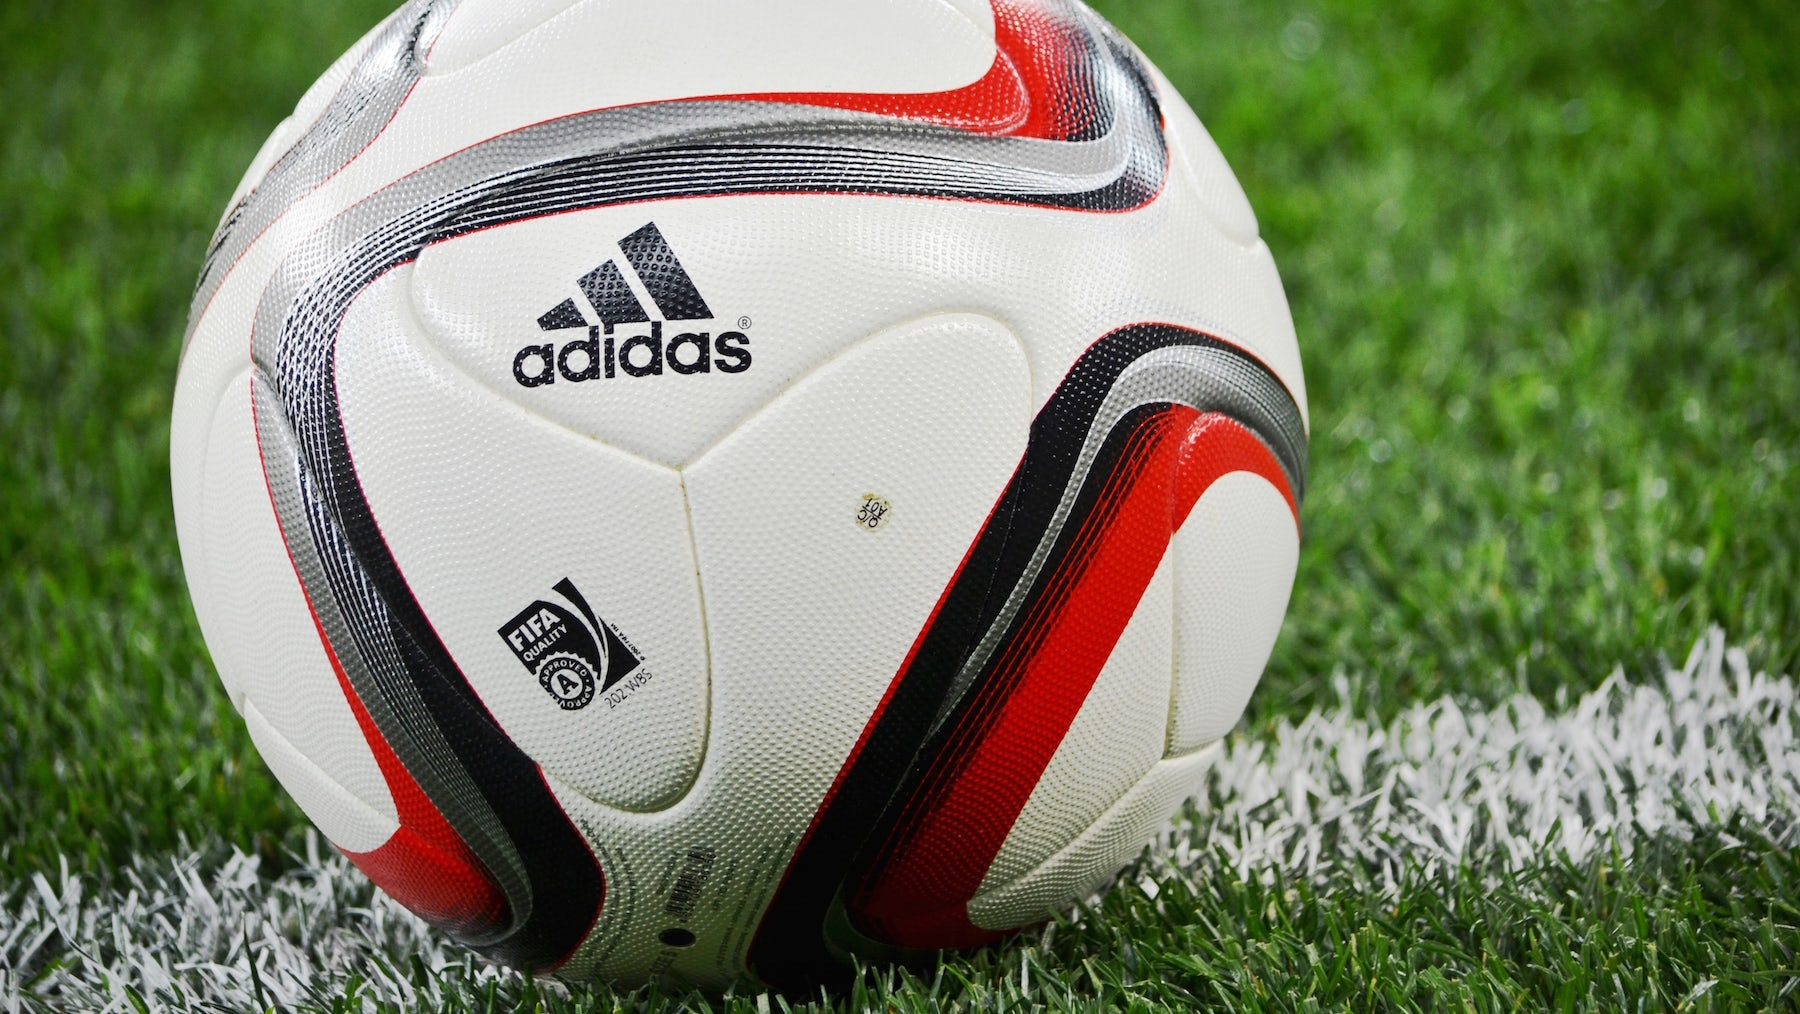 Adidas football | Source: Shutterstock